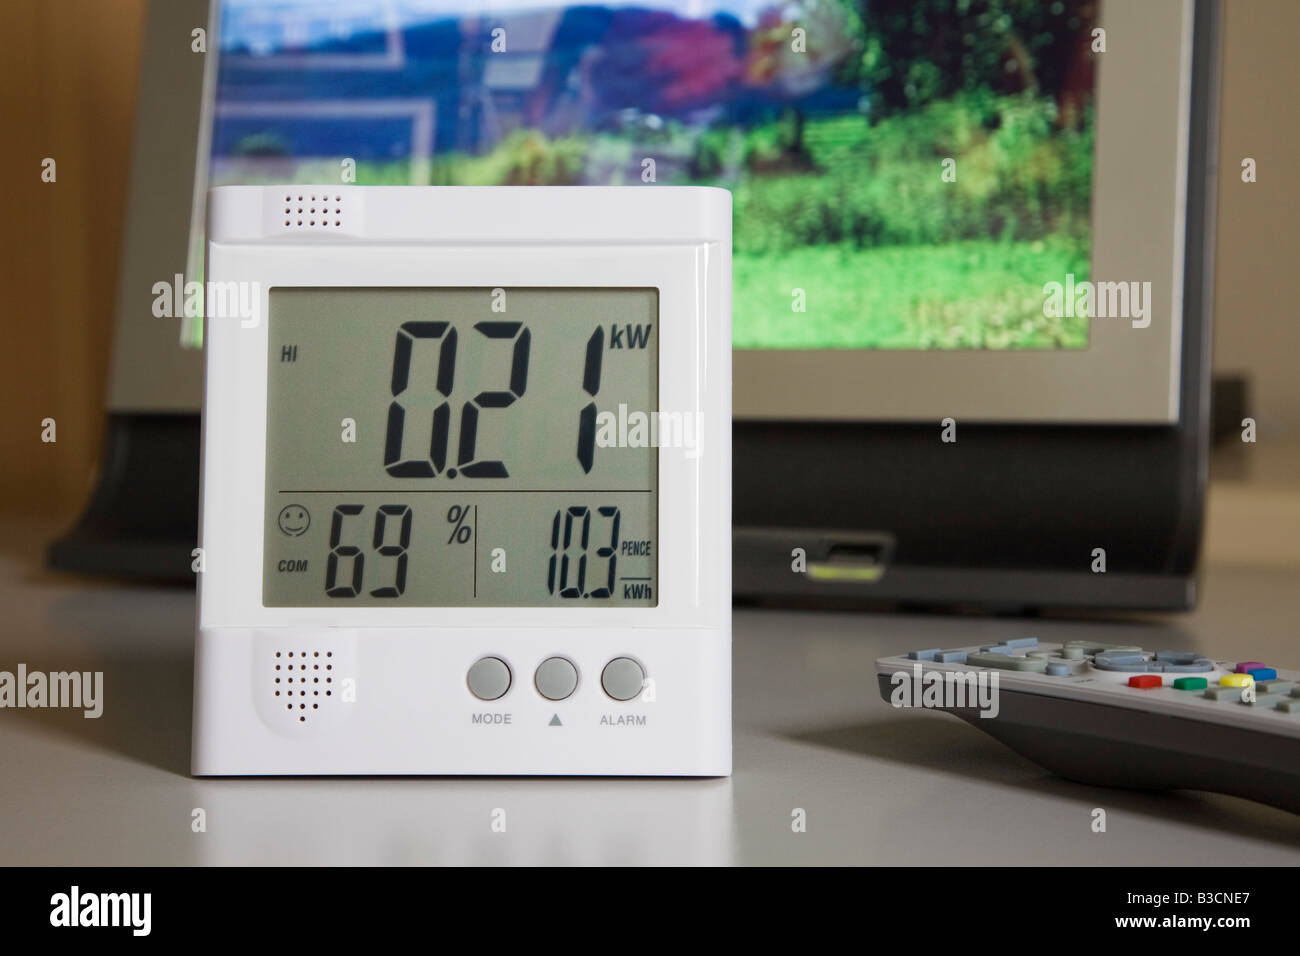 Close up of wireless Owl energy monitor with LED display showing kilowatts of electricity being used by a flatscreen - Stock Image